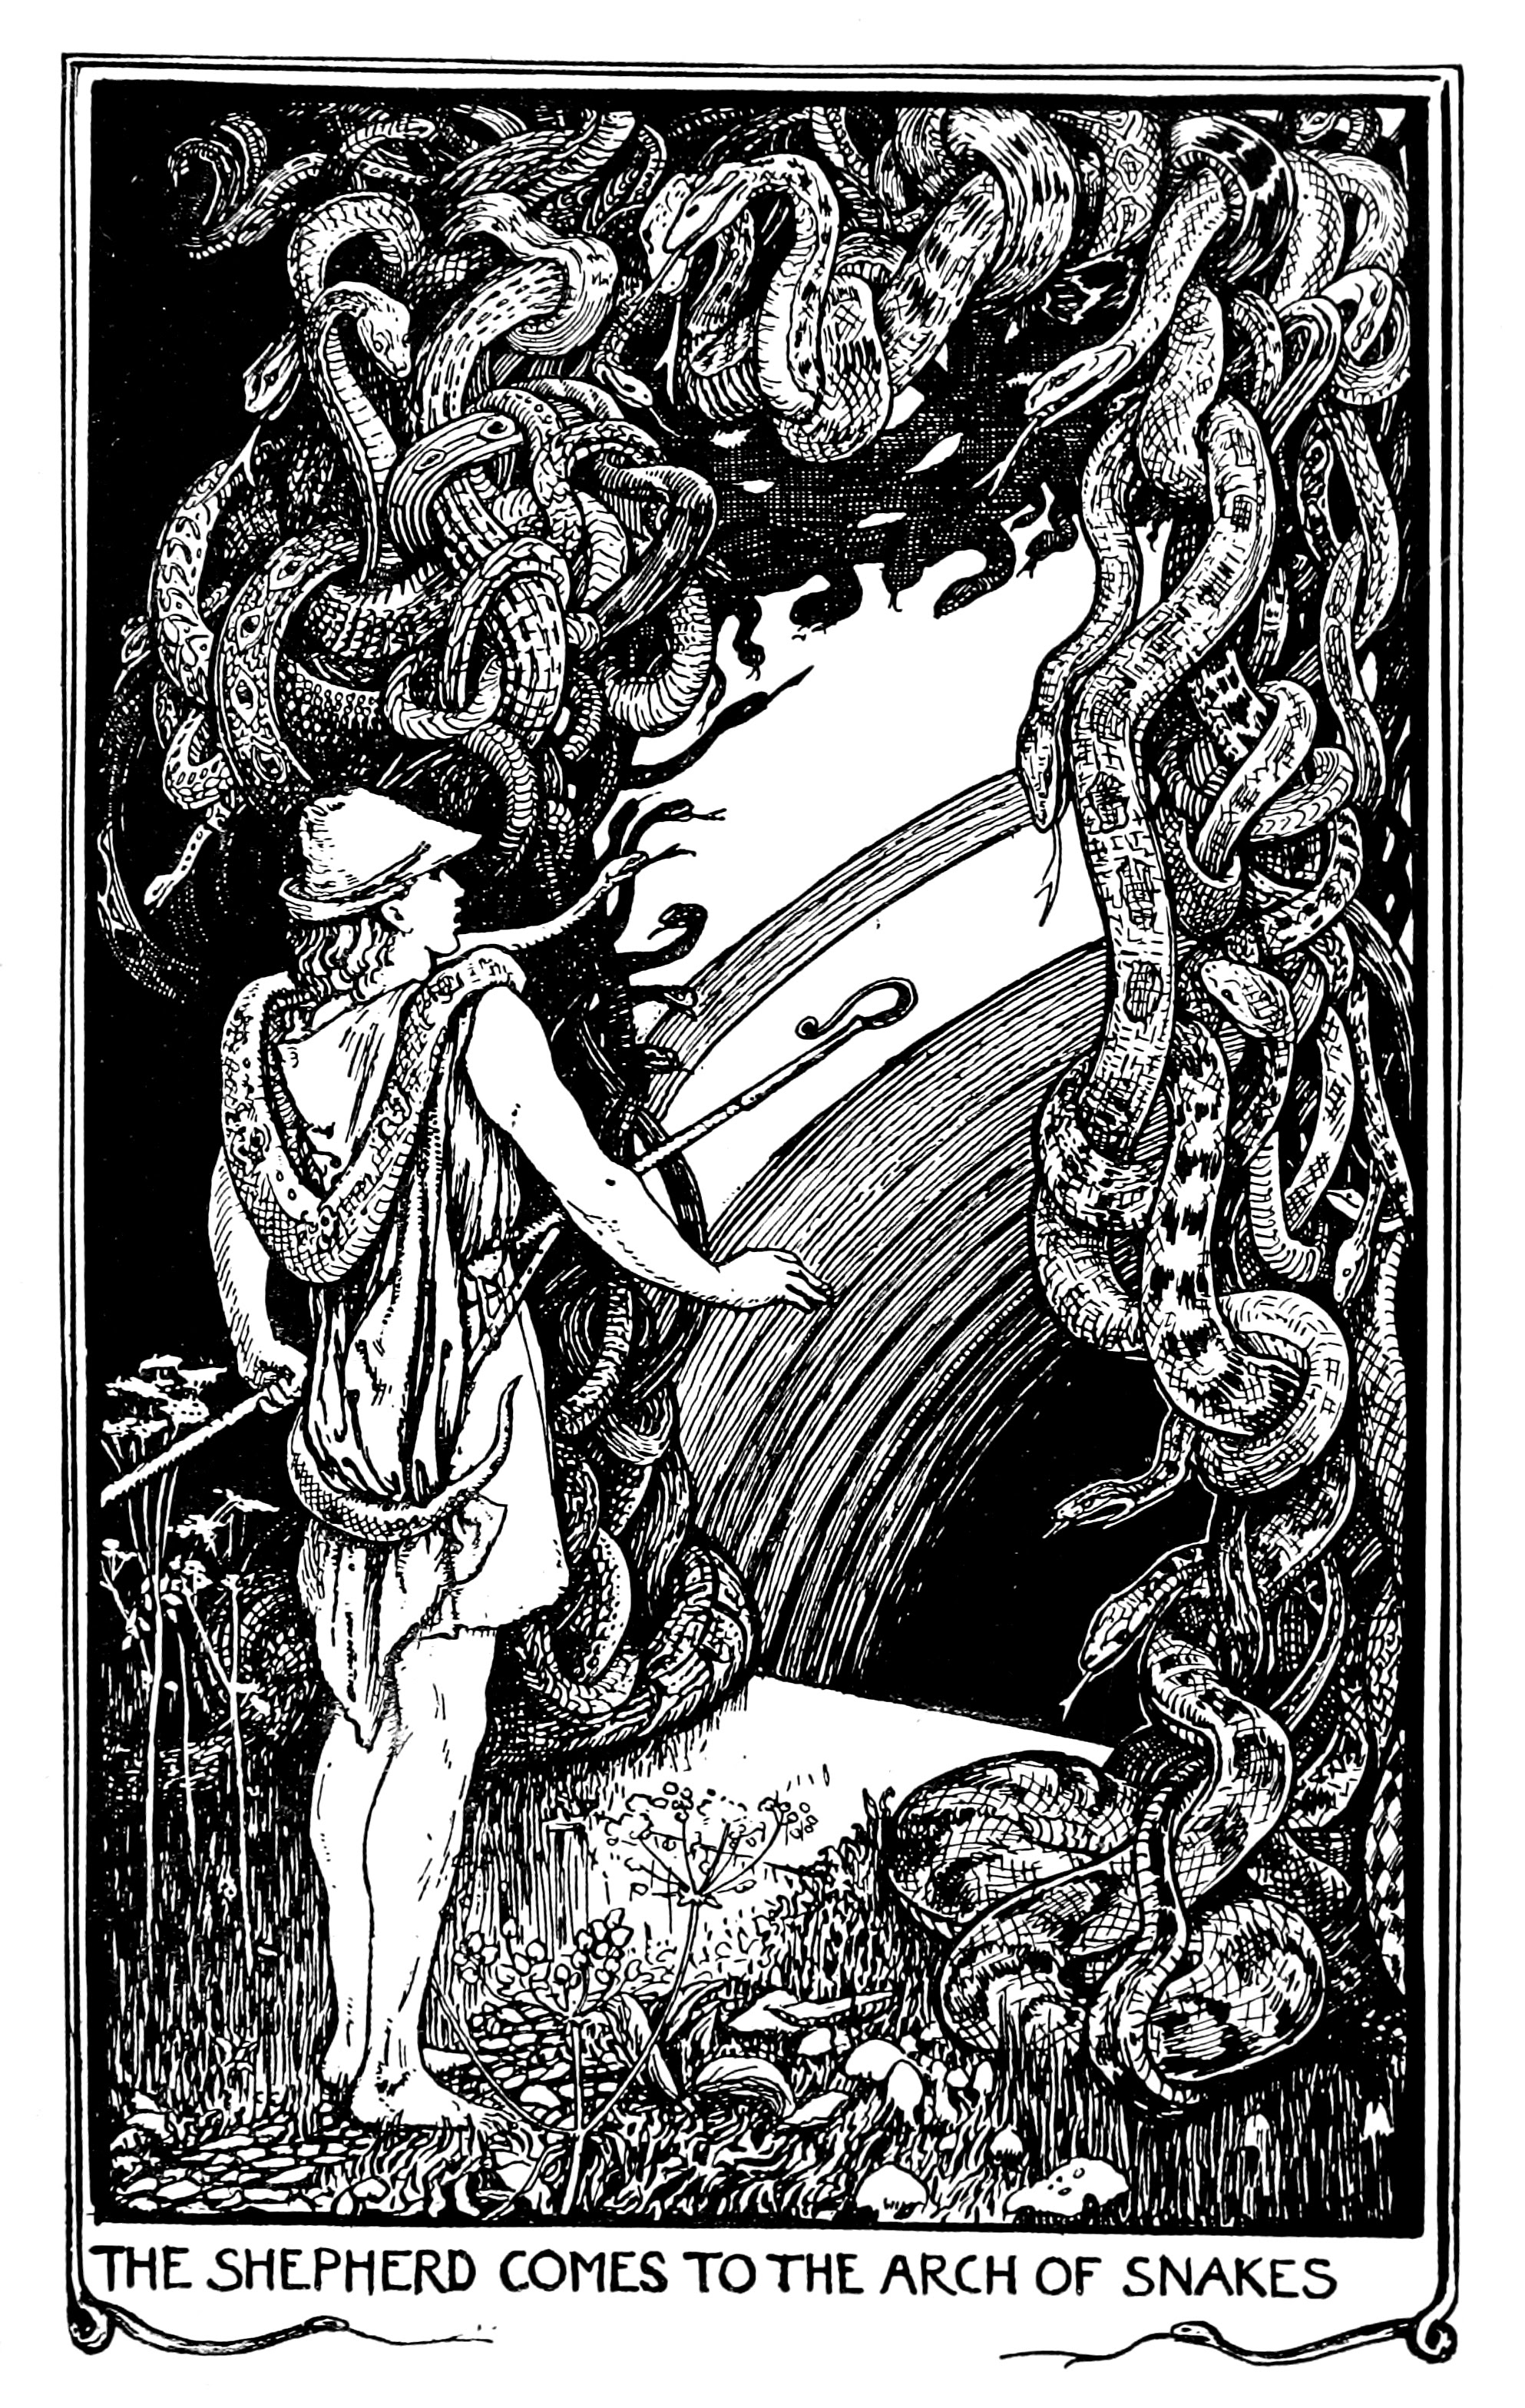 Henry Justice Ford - The crimson fairy book, edited by Andrew Lang, 1903 (illustration 3)